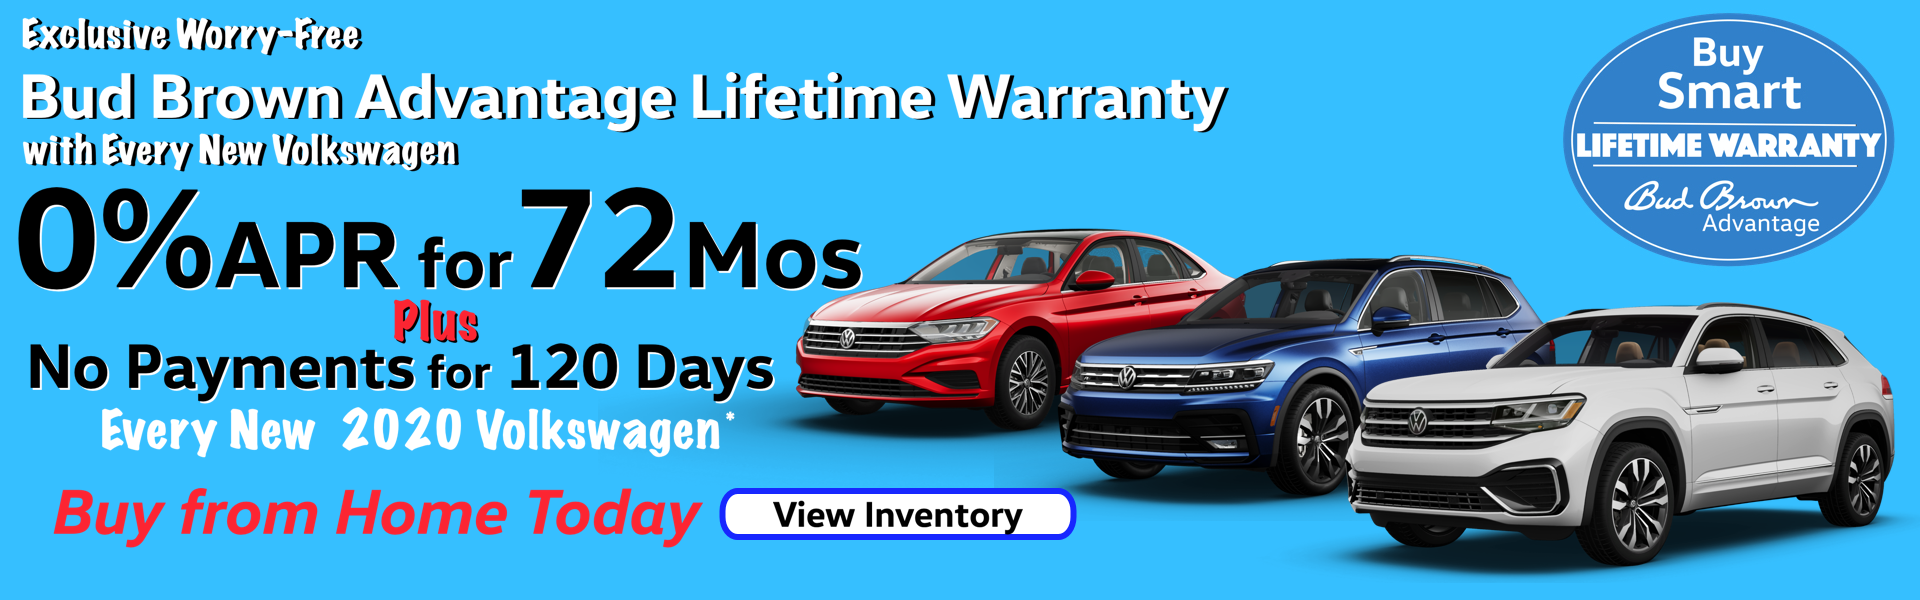 0%APR for 72 Months on every New 2020 VW